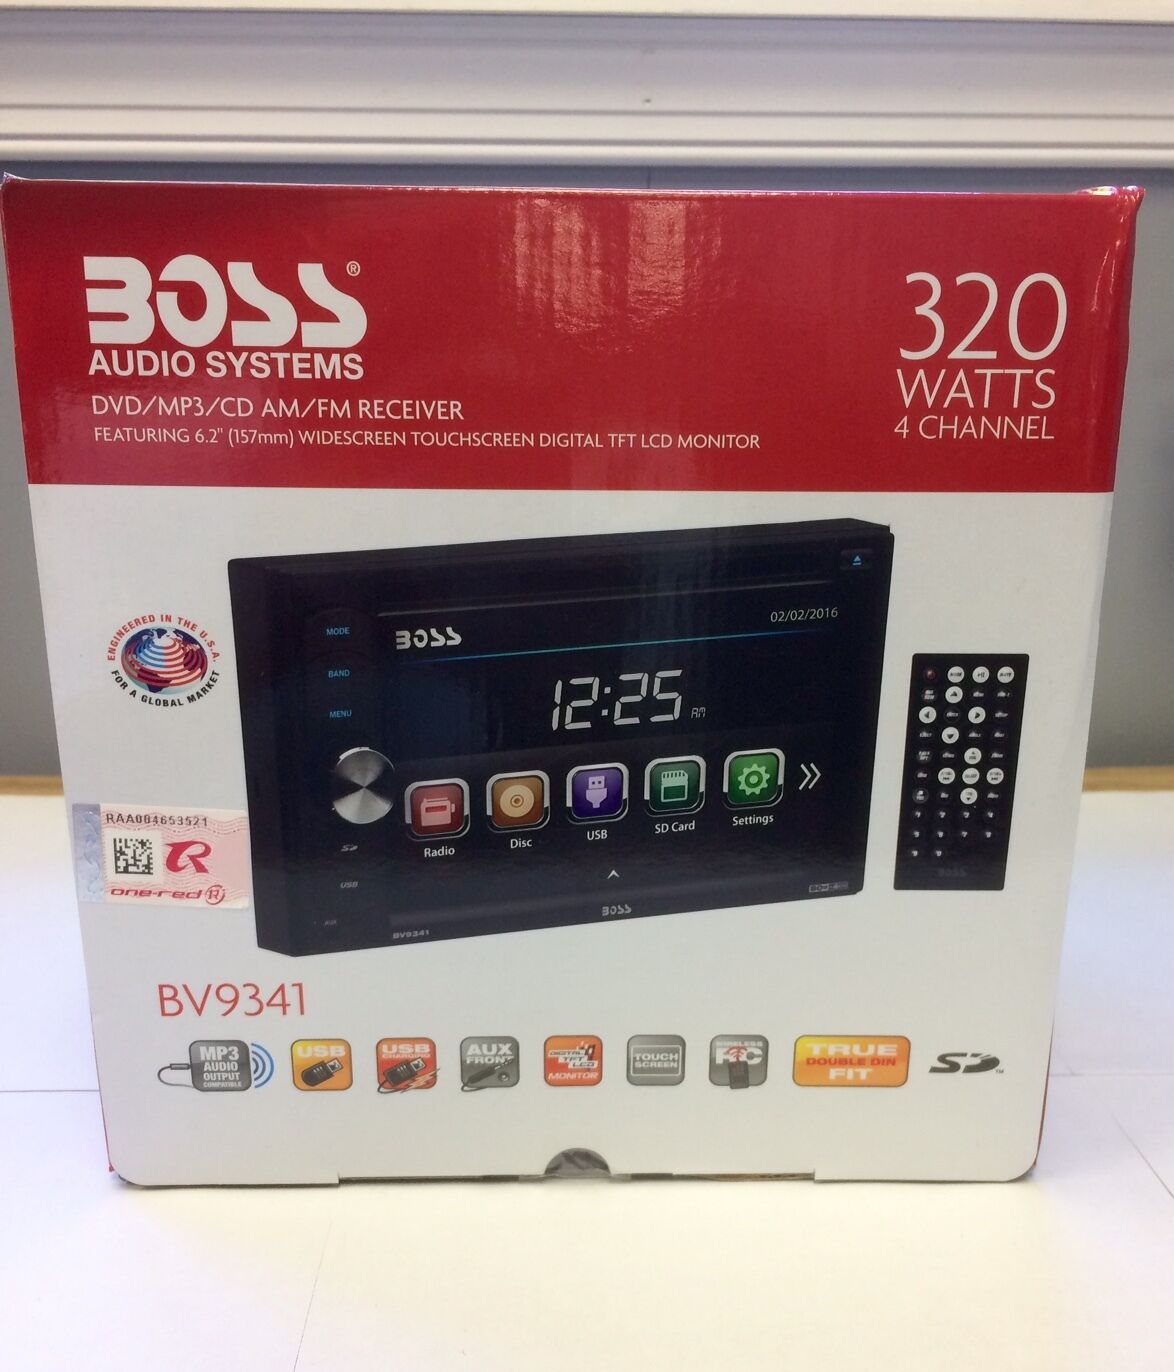 $74.99 - Boss BV9341 Double DIN DVD/CD/AM/FM/Digital Media Car Stereo Receiver NEW